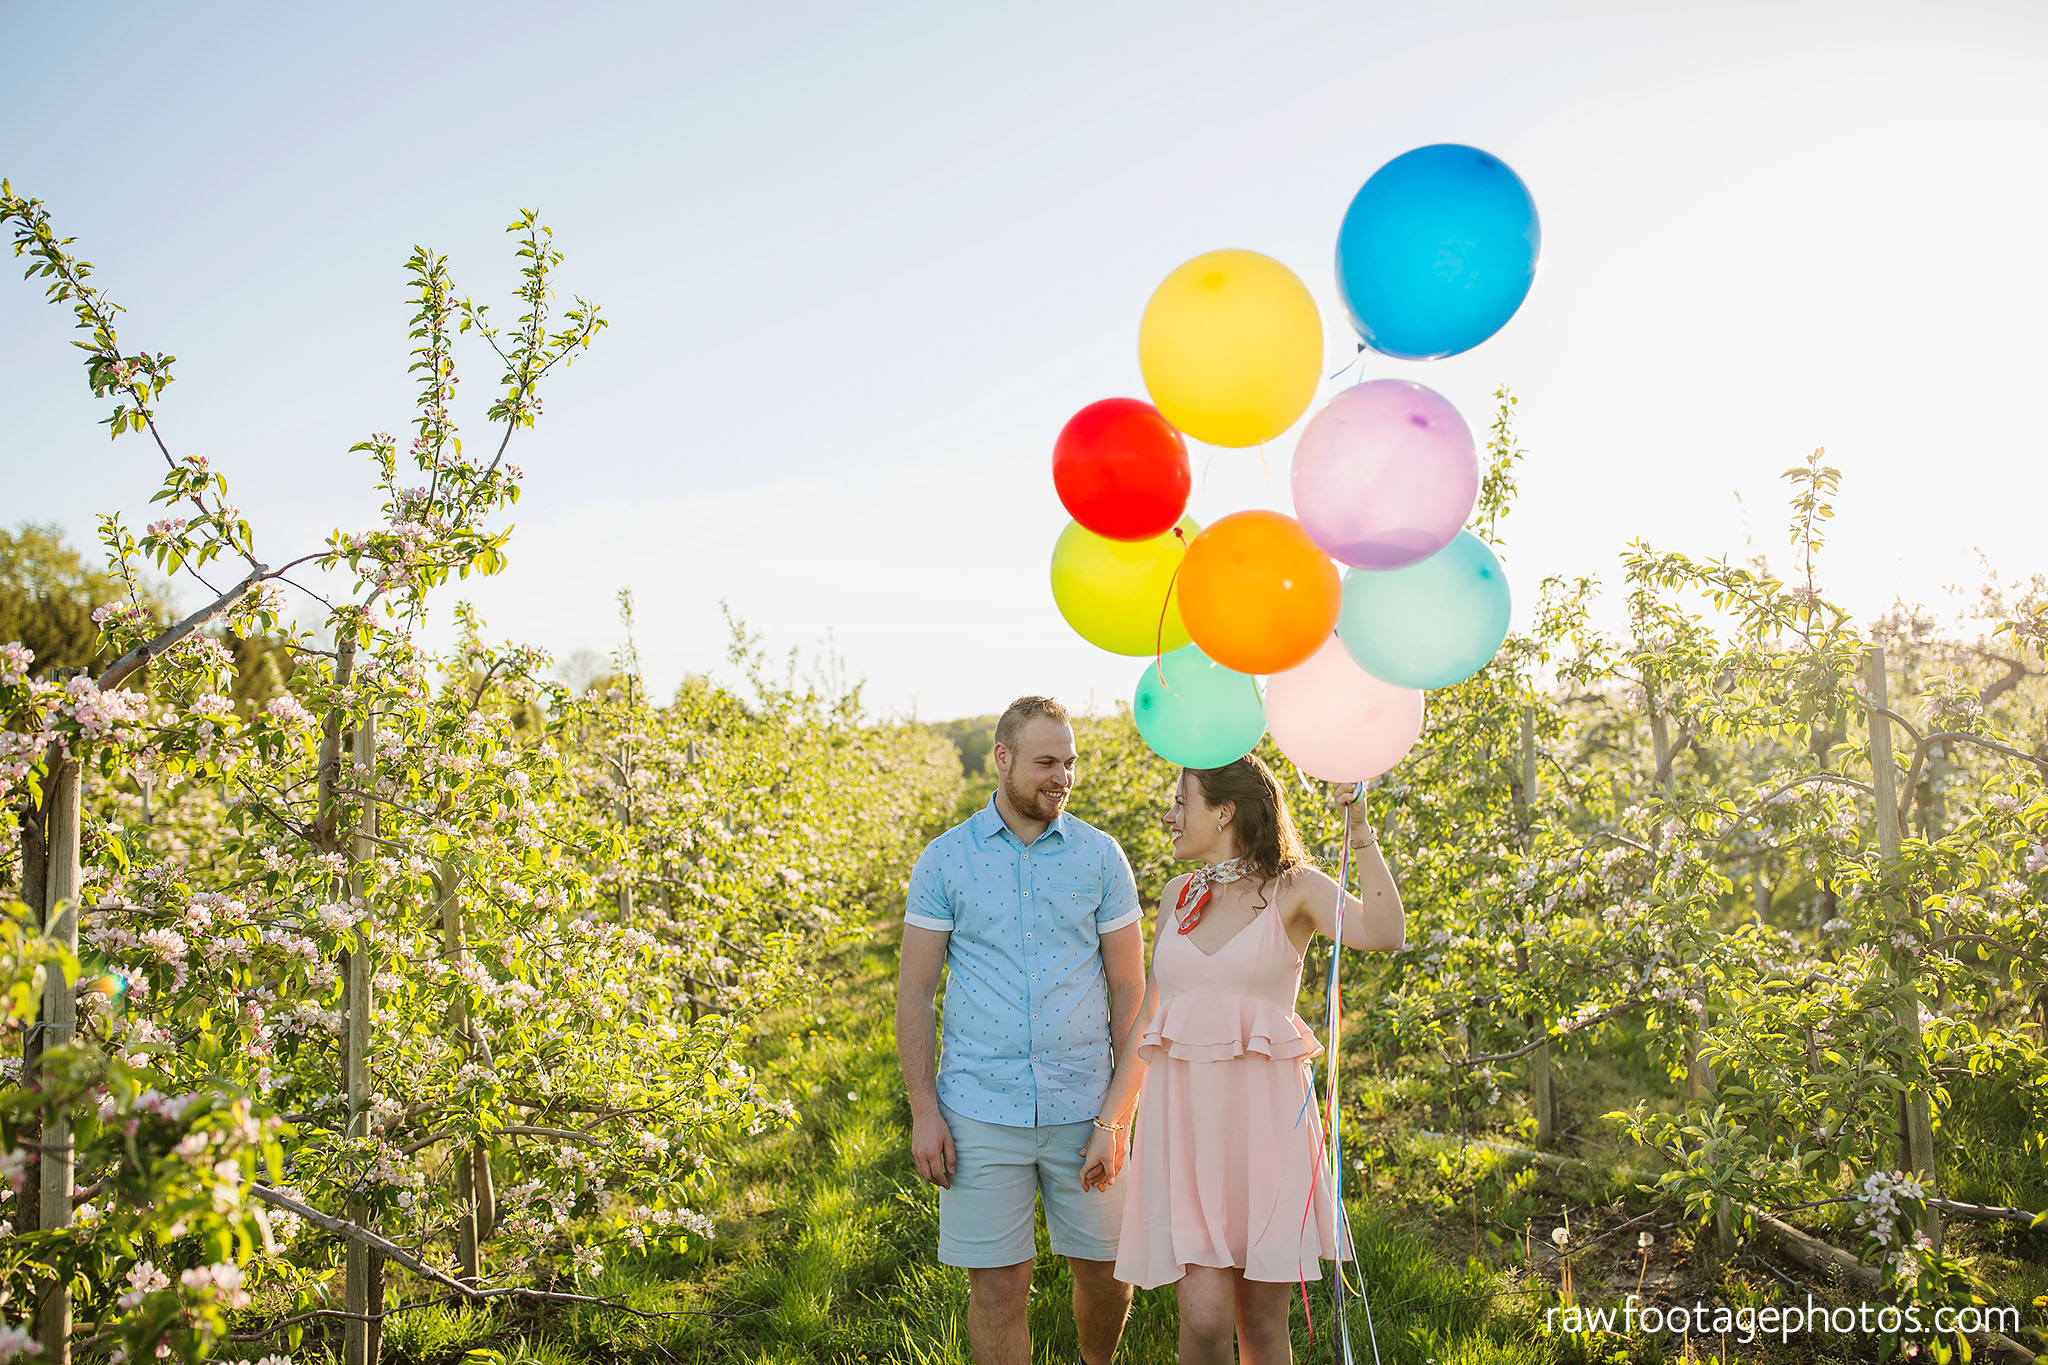 london_ontario_wedding_photographer-raw_footage_photography-engagement_session-airport_session-airplane-balloons-apple_orchard-spring_blooms-apple_blossoms015.jpg